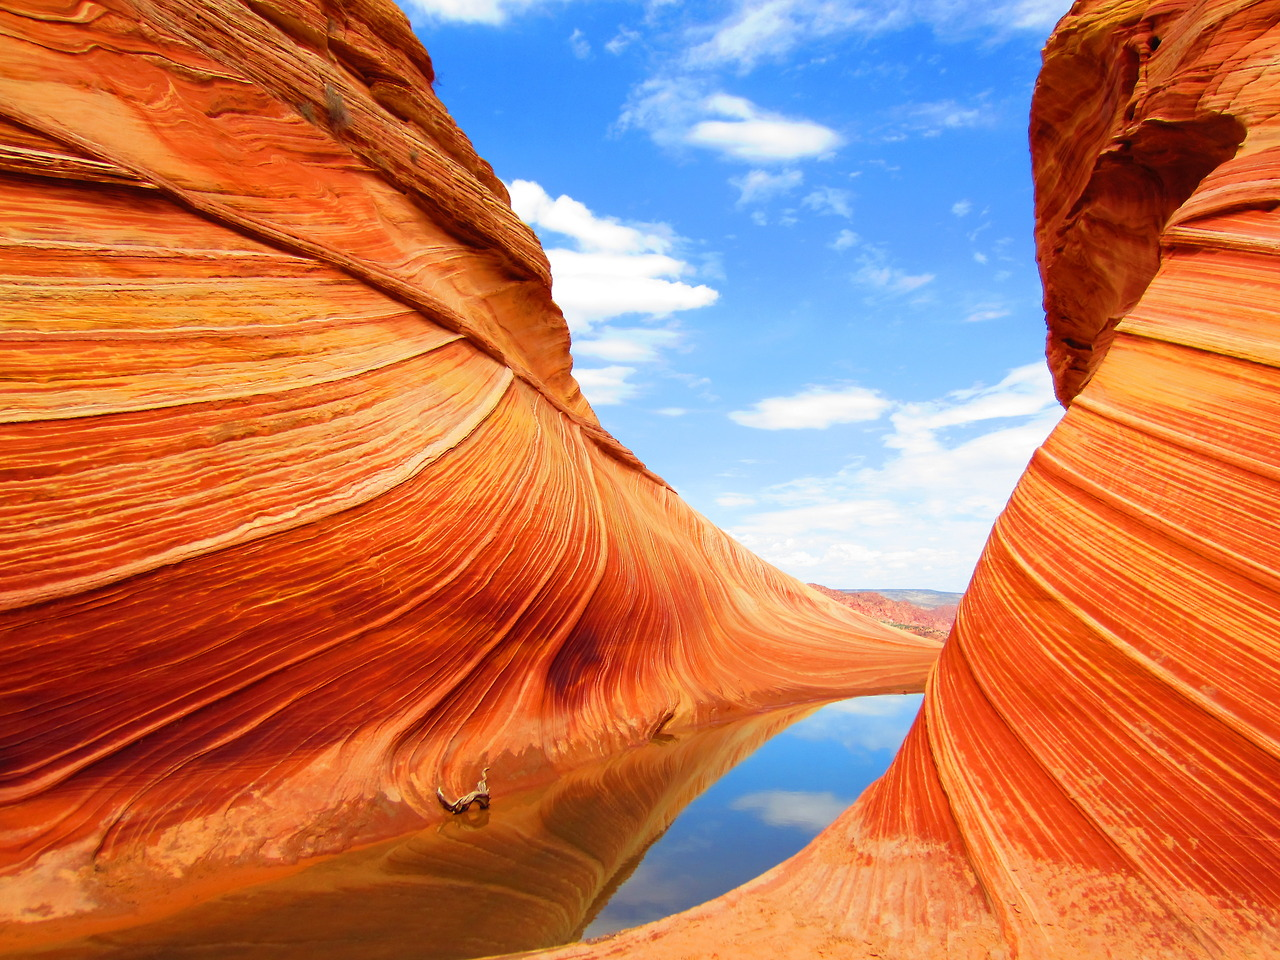 Colorado Plateau, Paria Canyon, Utah загрузить